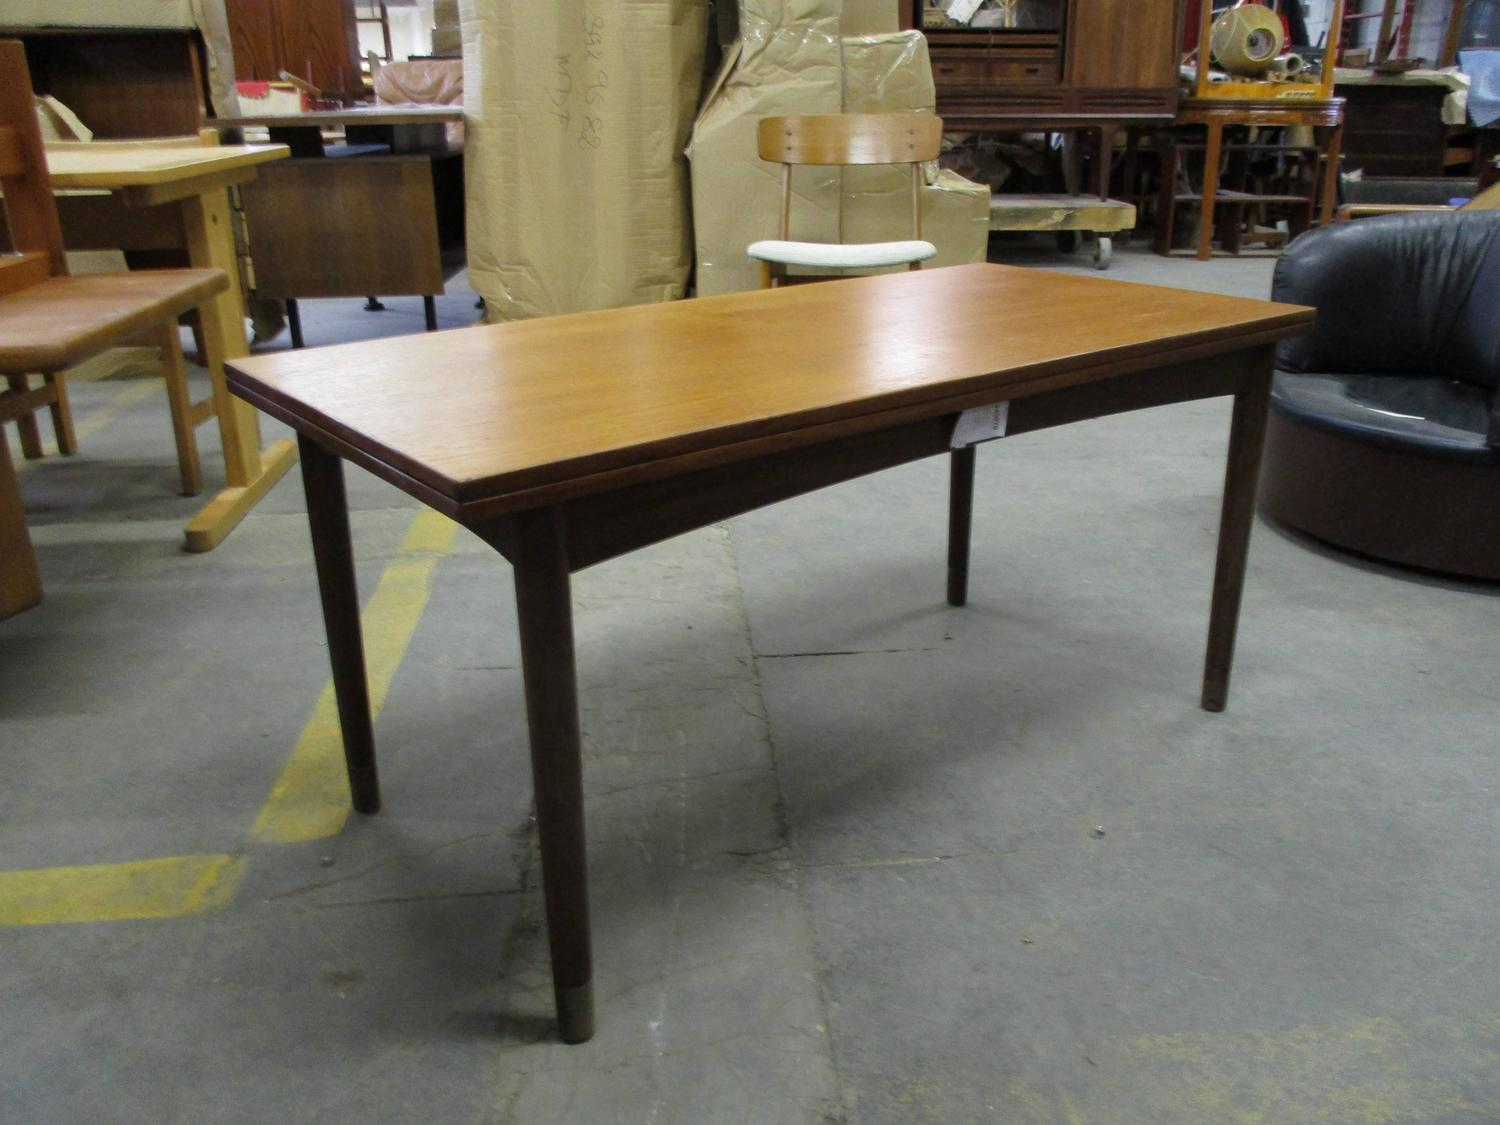 Coffee Table Converts Game Table Hans Olsen Coffee Table Converts To Dining Table For Sale At 1stdibs